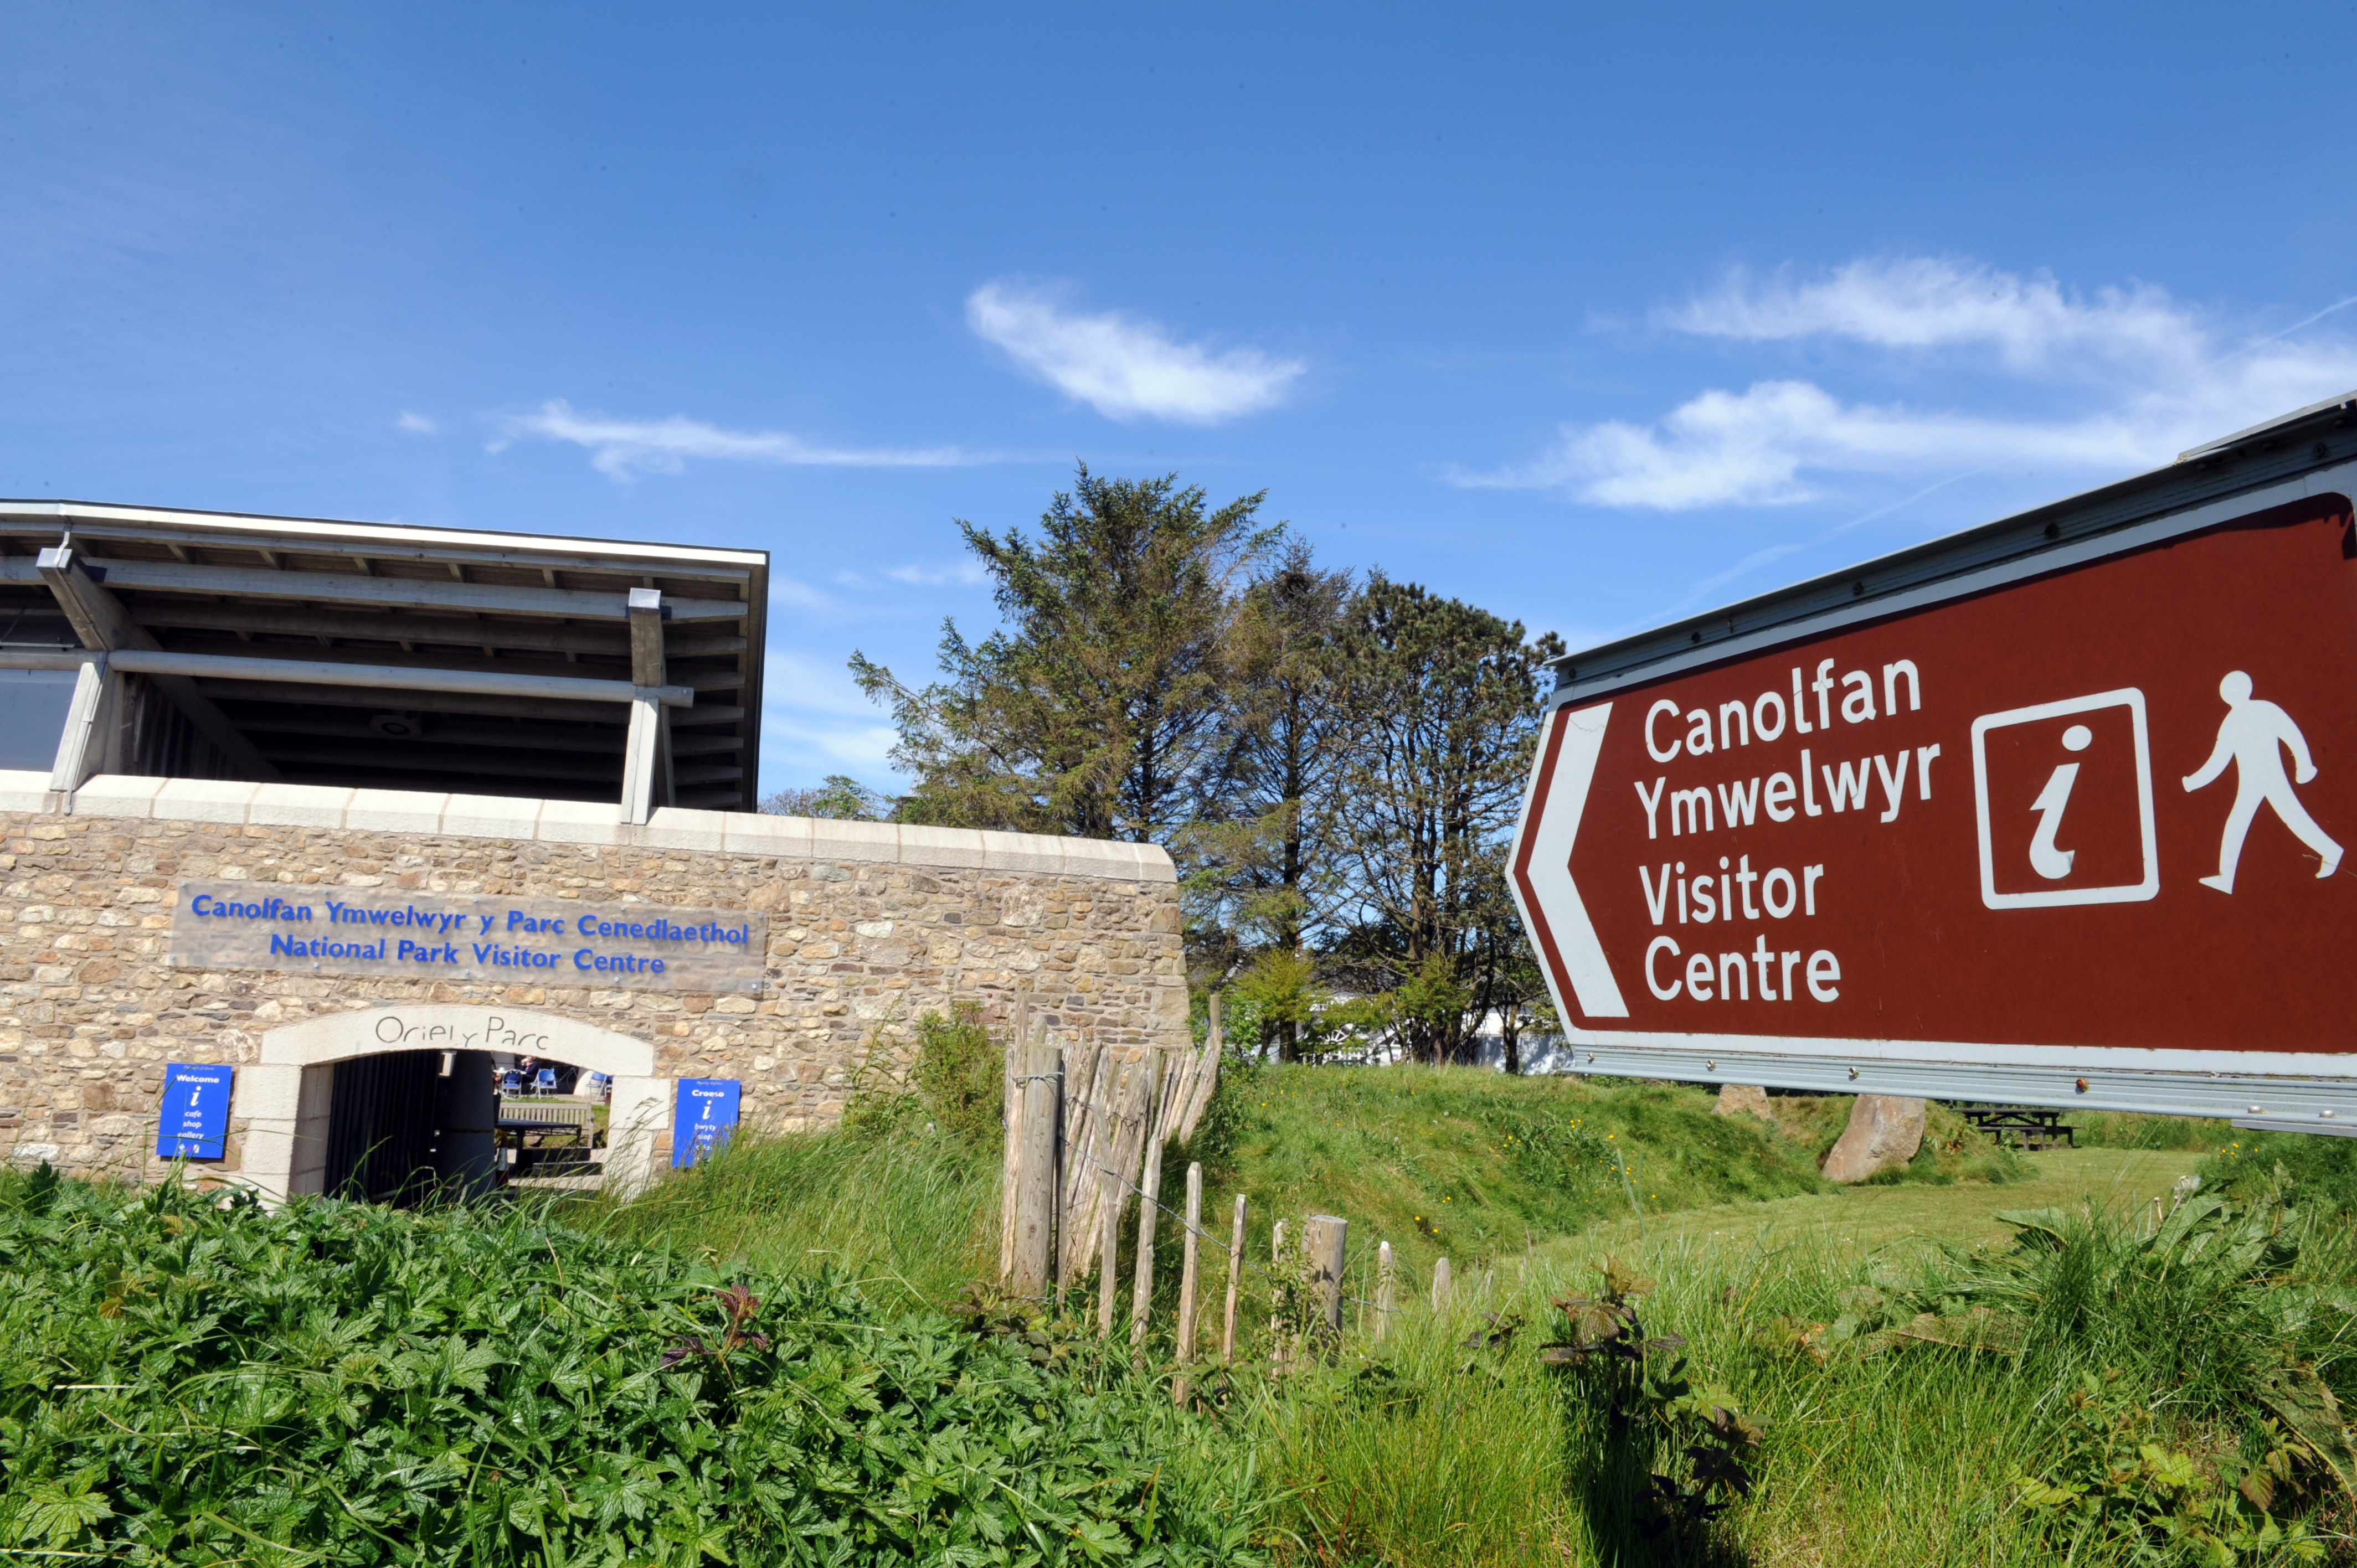 Oriel y Parc Gallery and Visitor Centre, St Davids